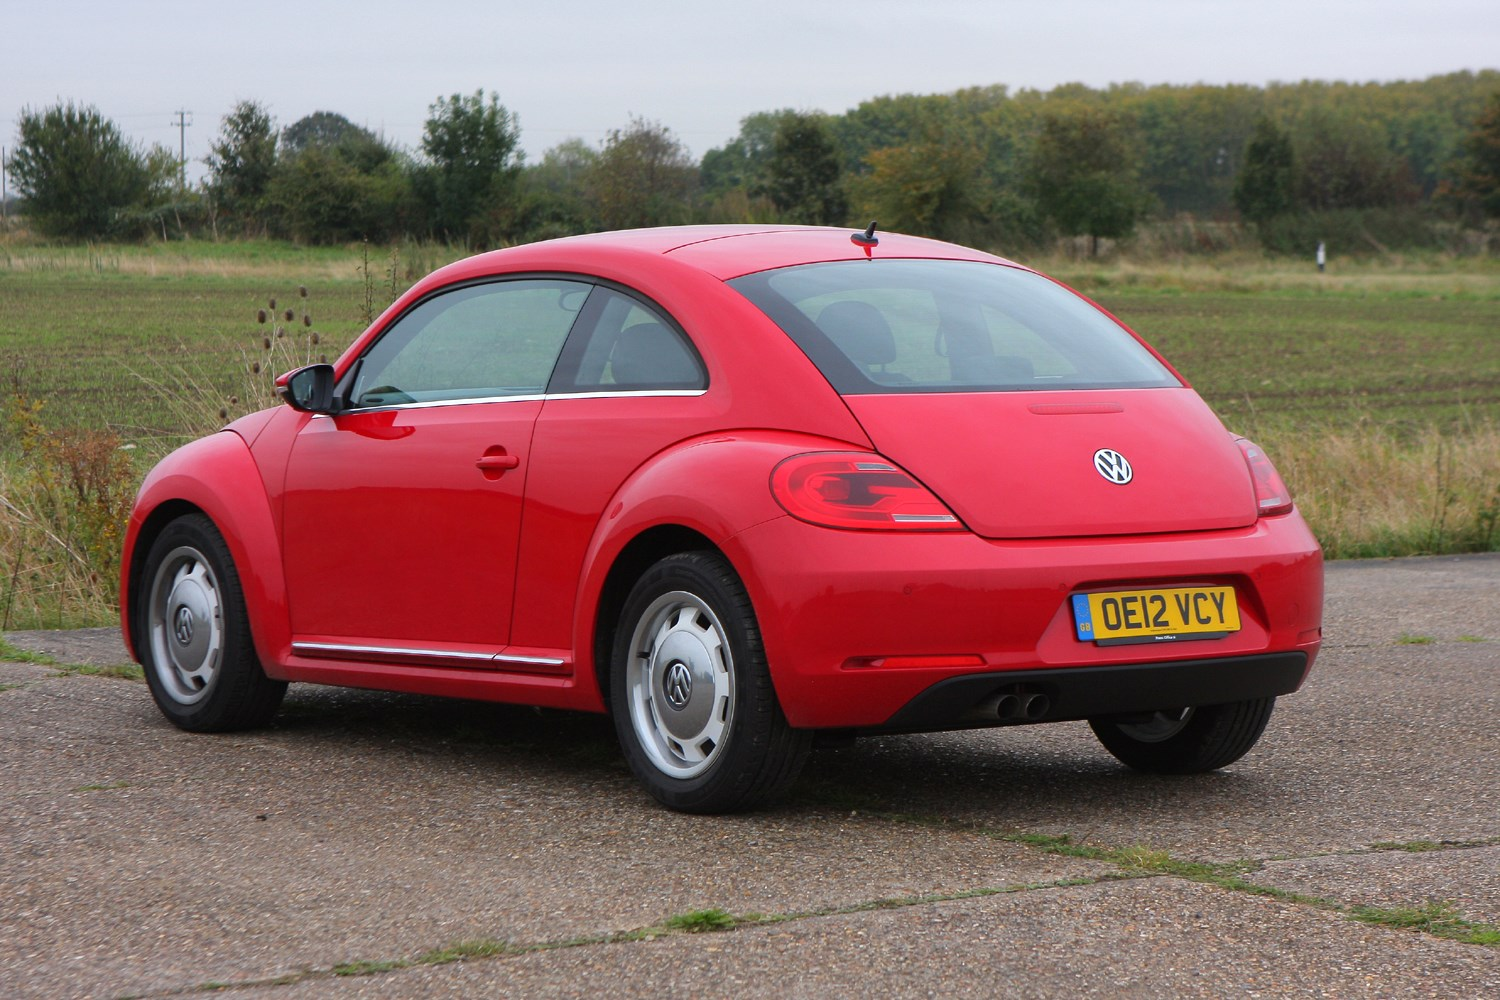 volkswagen beetle hatchback review 2012 parkers. Black Bedroom Furniture Sets. Home Design Ideas